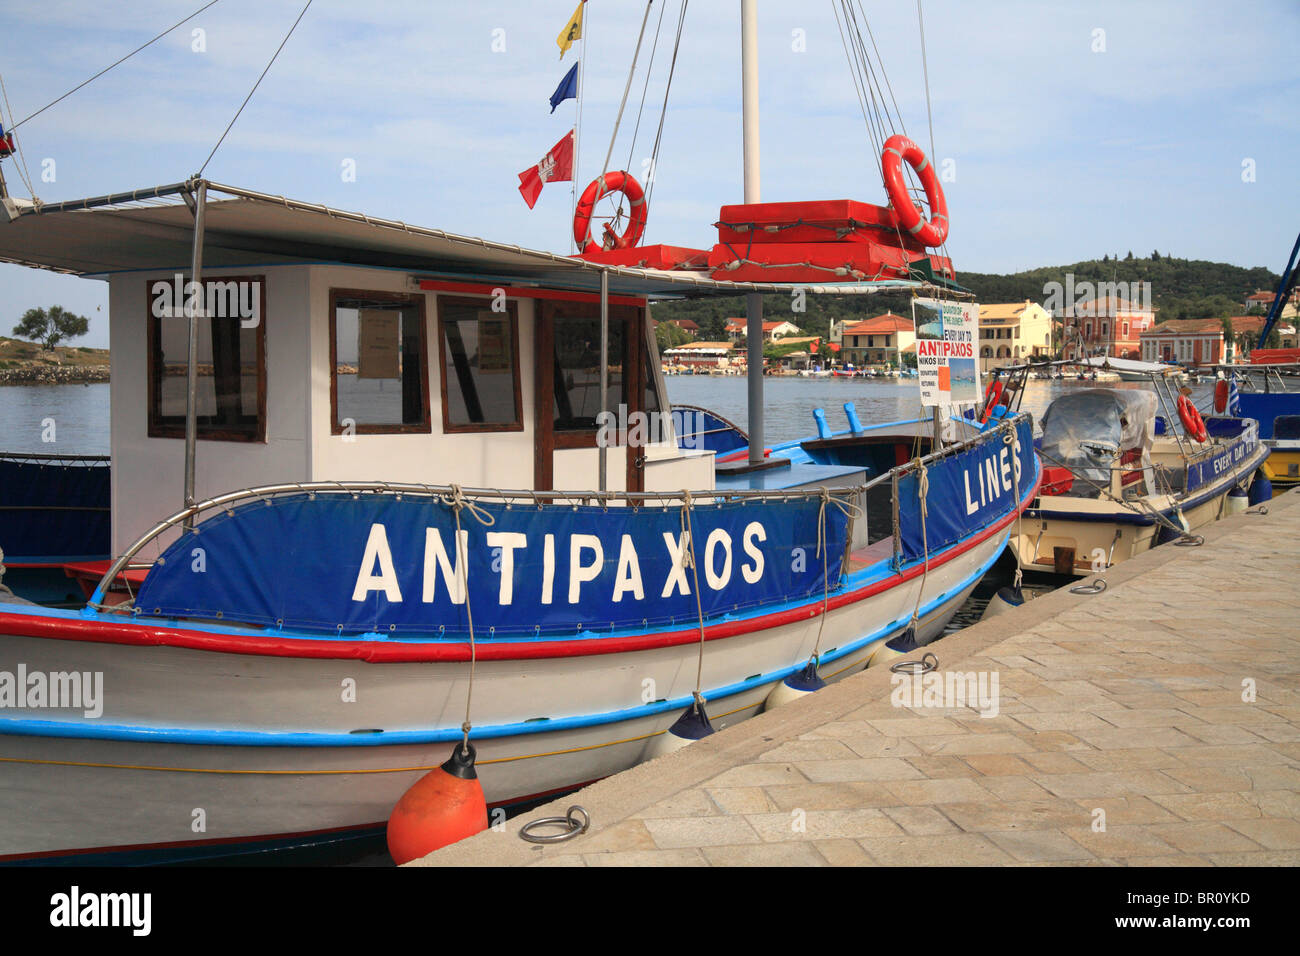 Antipaxos tourist day trip boat moored in Gaios harbour on Paxos and small Ionian island, Greece. - Stock Image